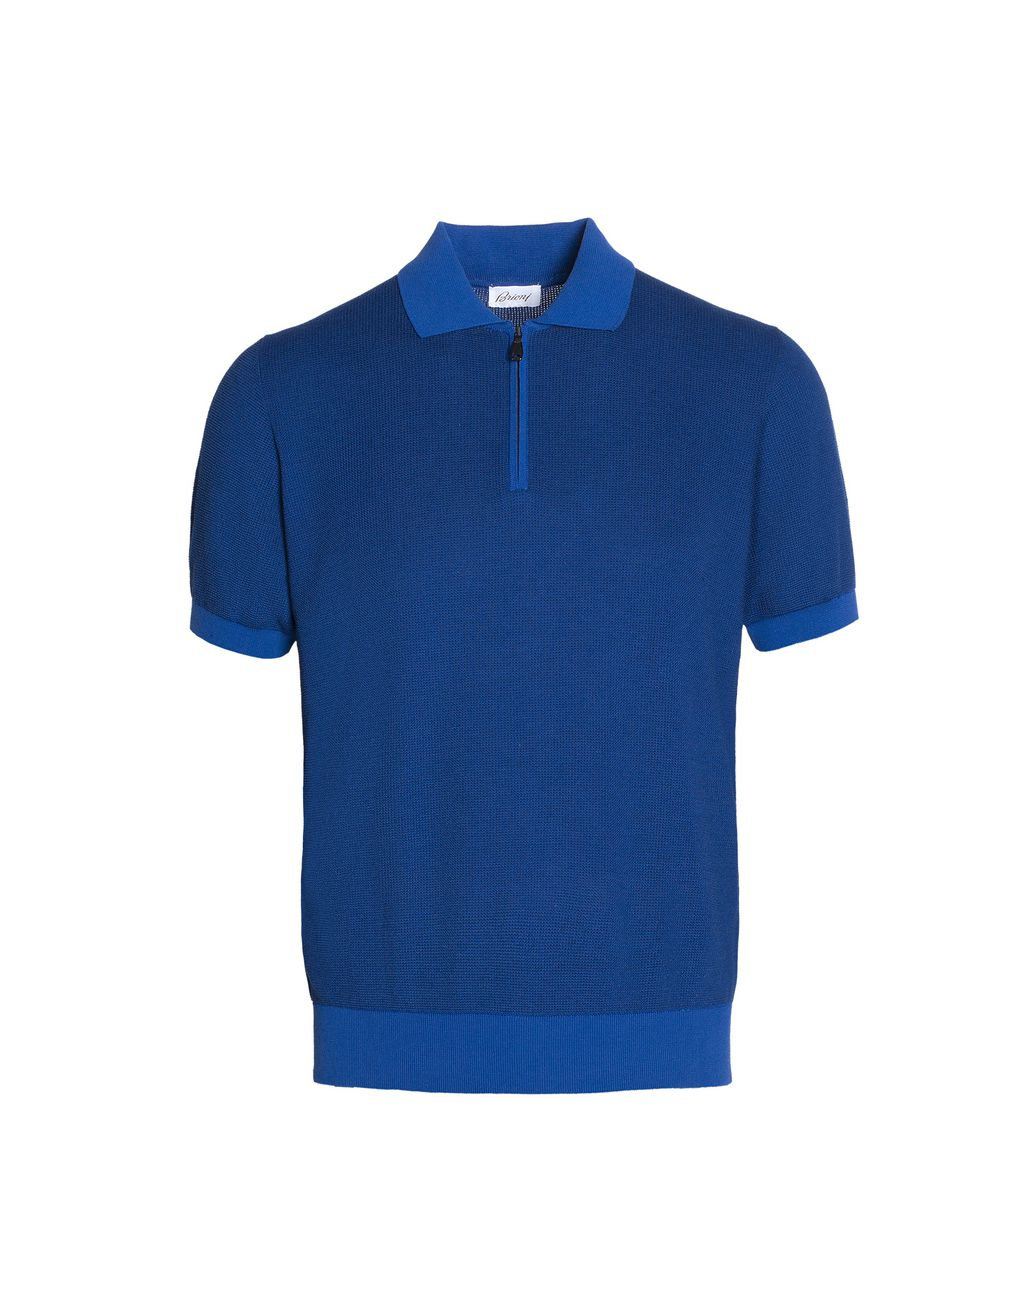 BRIONI Bluette Zipped Polo Shirt T-Shirts & Polos Man r